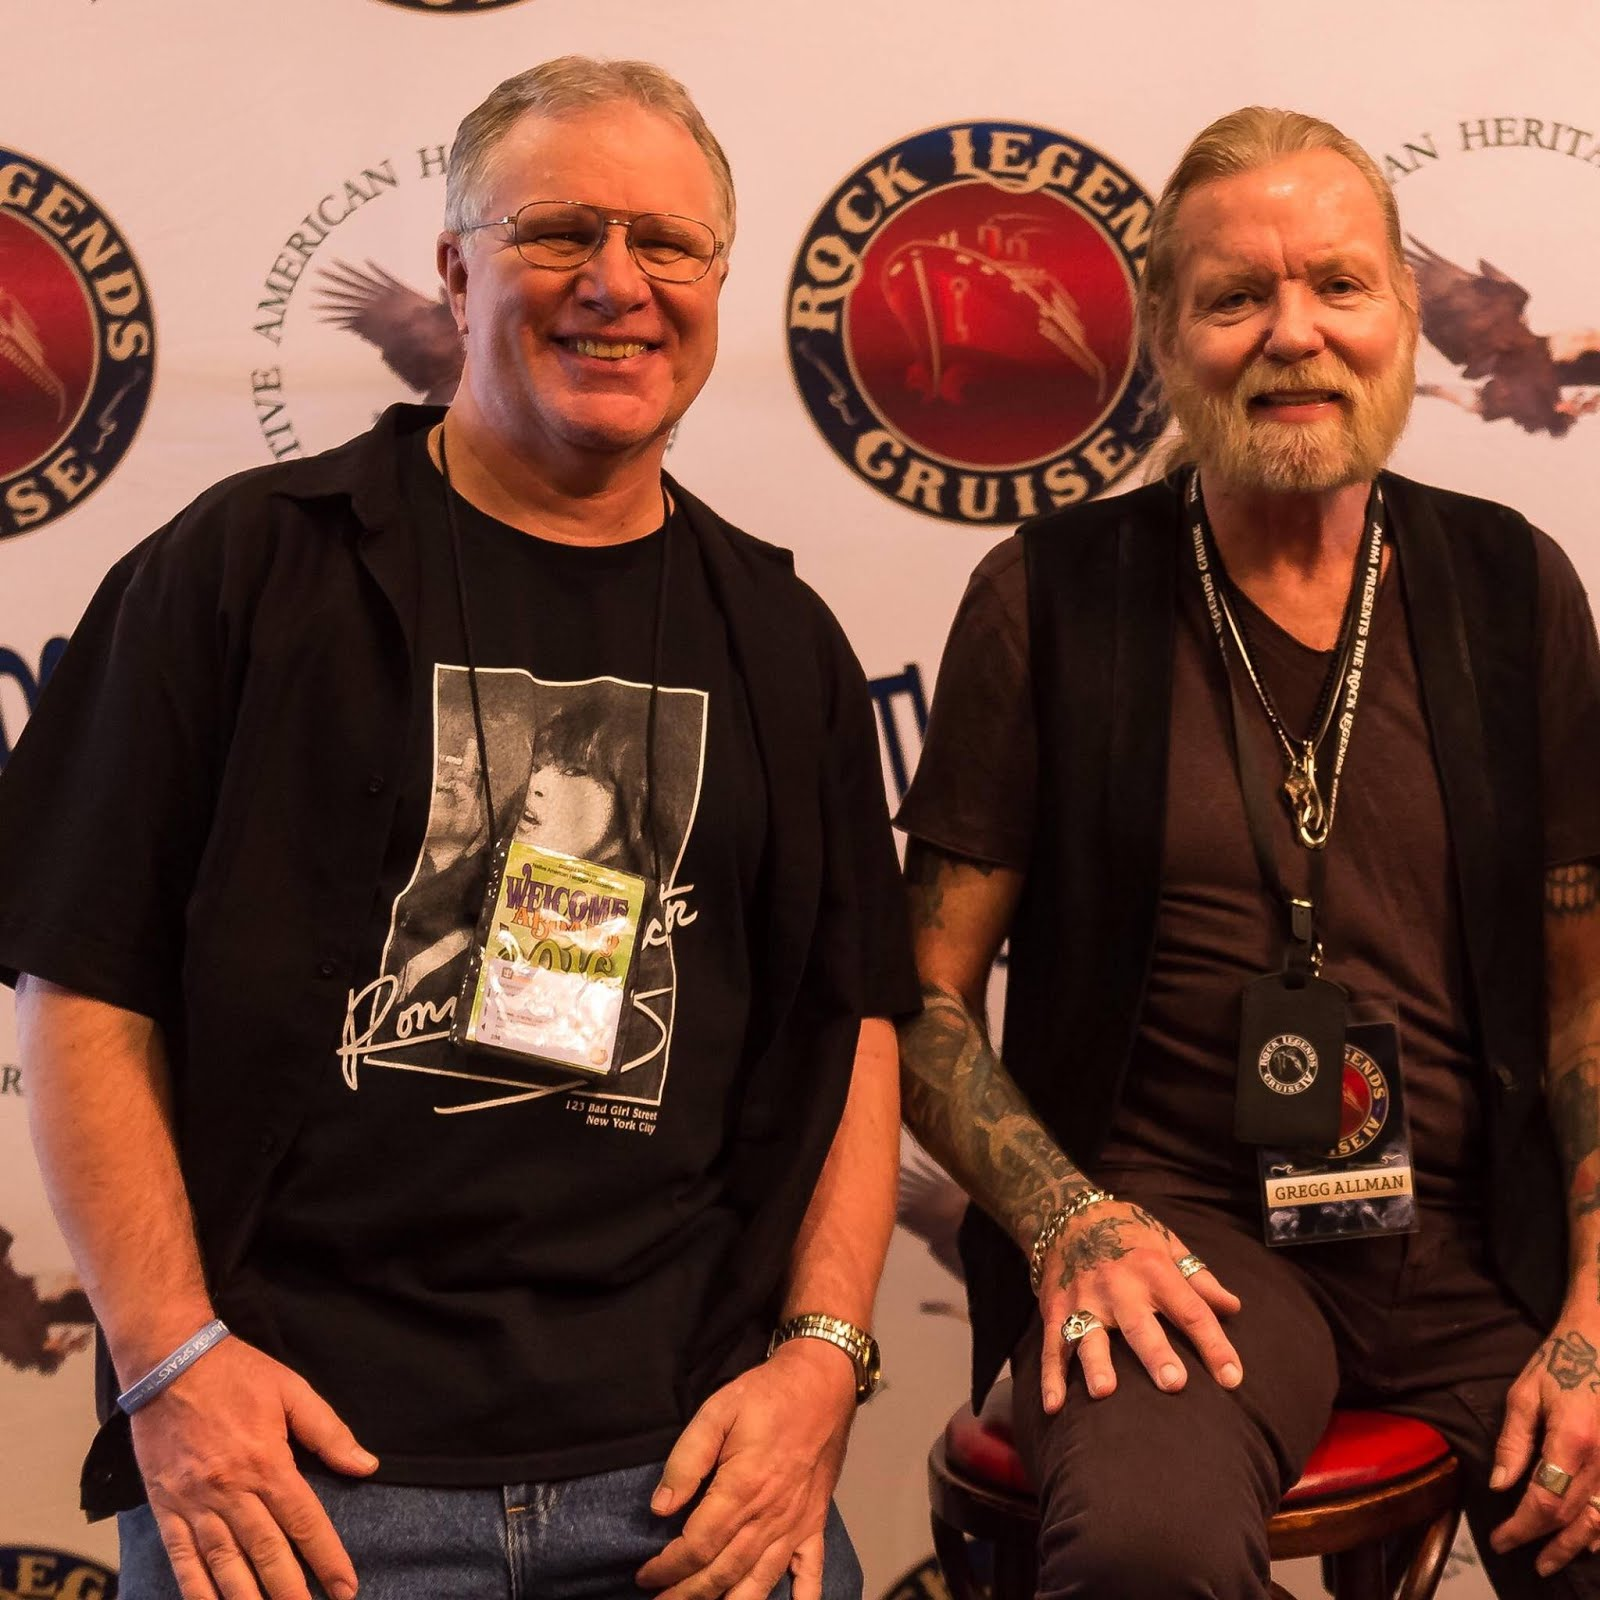 Gregg Allman and I Welcome You to Finding the Right Keys